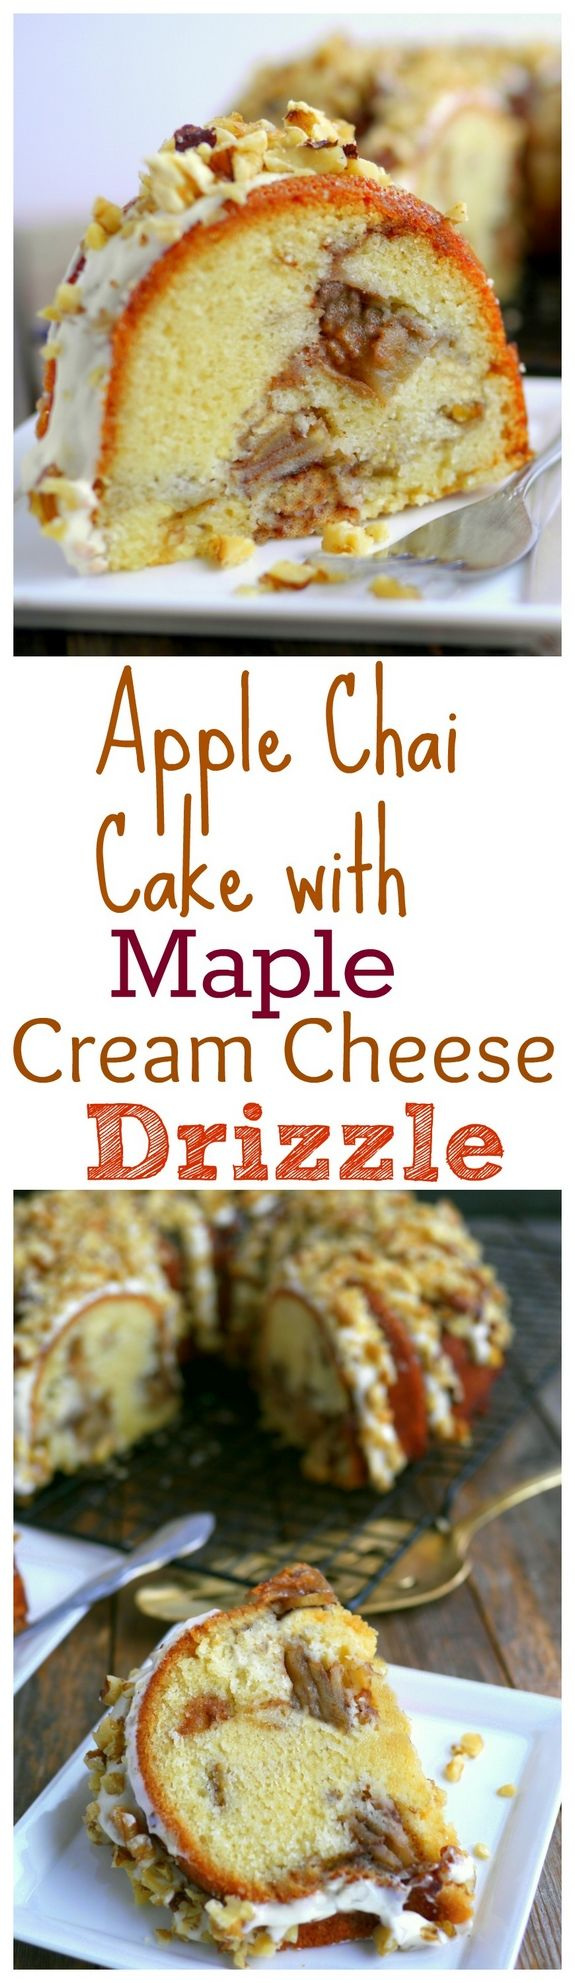 Apple Chai Cake with Maple Cream Cheese Drizzle from NoblePig.com.